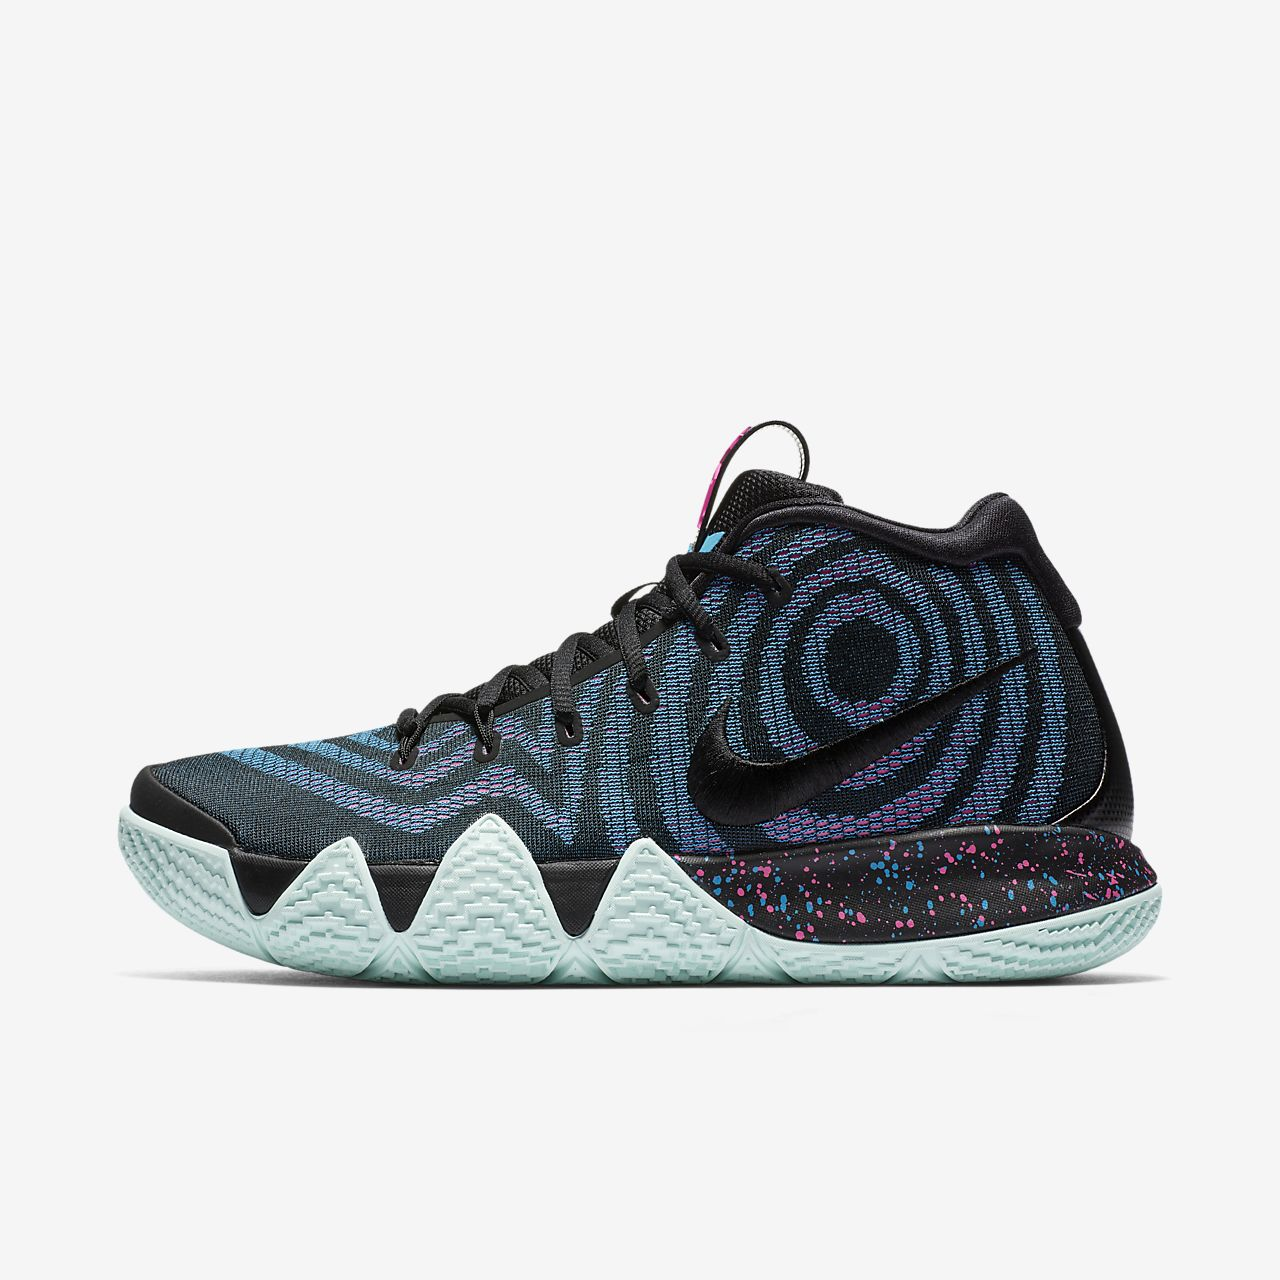 new styles 04675 1acd2 switzerland nike basketball shoes last sale 5f6f9 1a60a  uk kyrie 4 80s  basketball shoe aa90b fe218